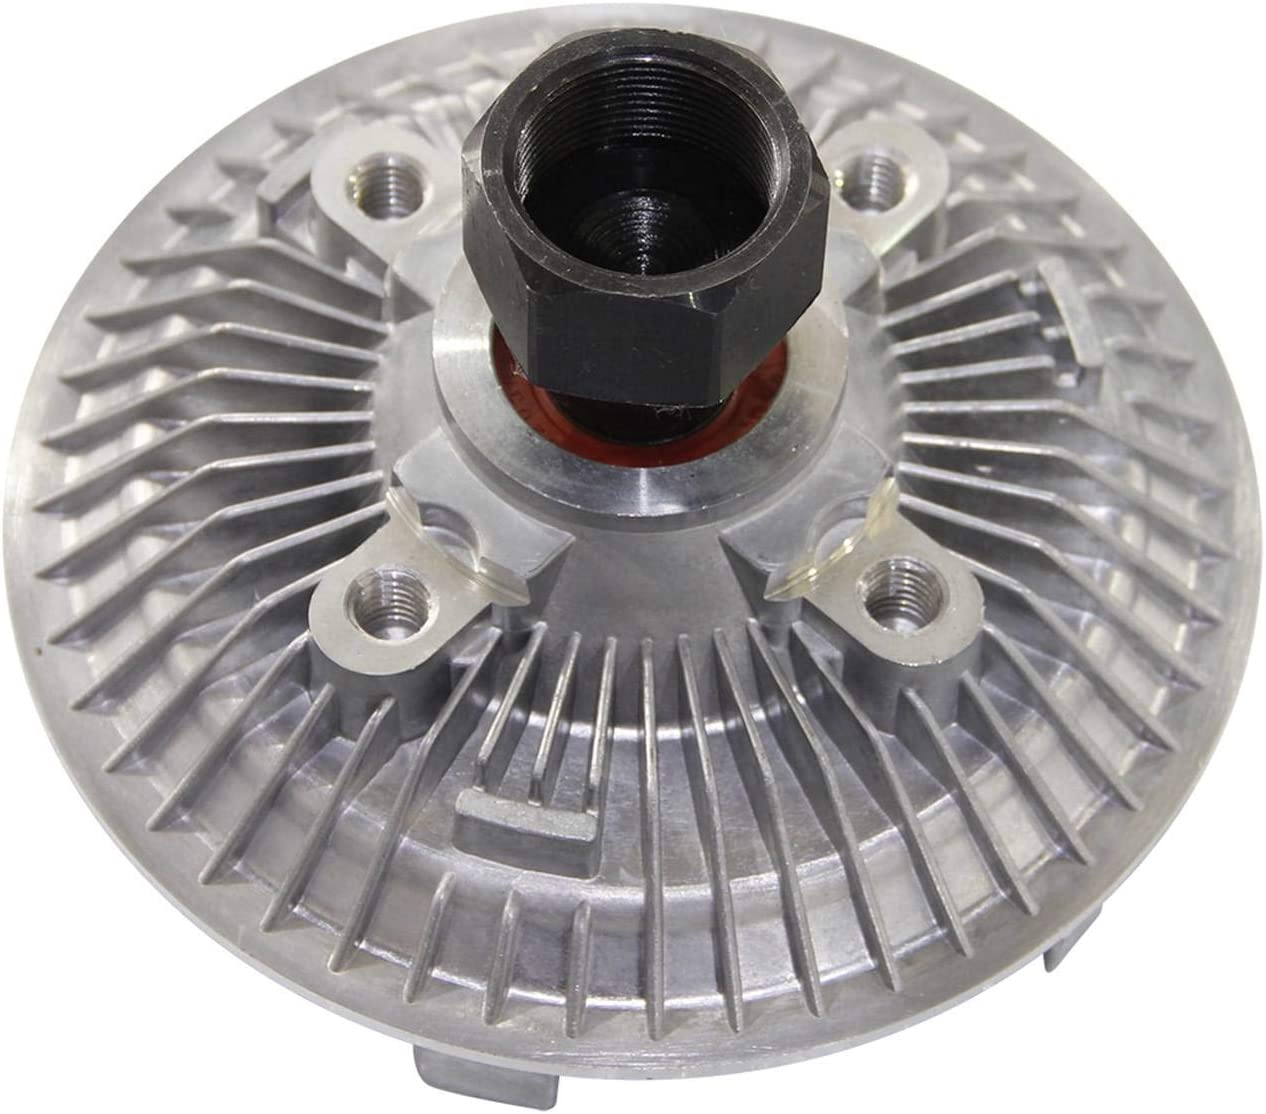 TOPAZ 2632 Engine Cooling Thermal Fan Clutch for Chevrolet S10 GMC Sonoma Isuzu Hombre 2.2L L4